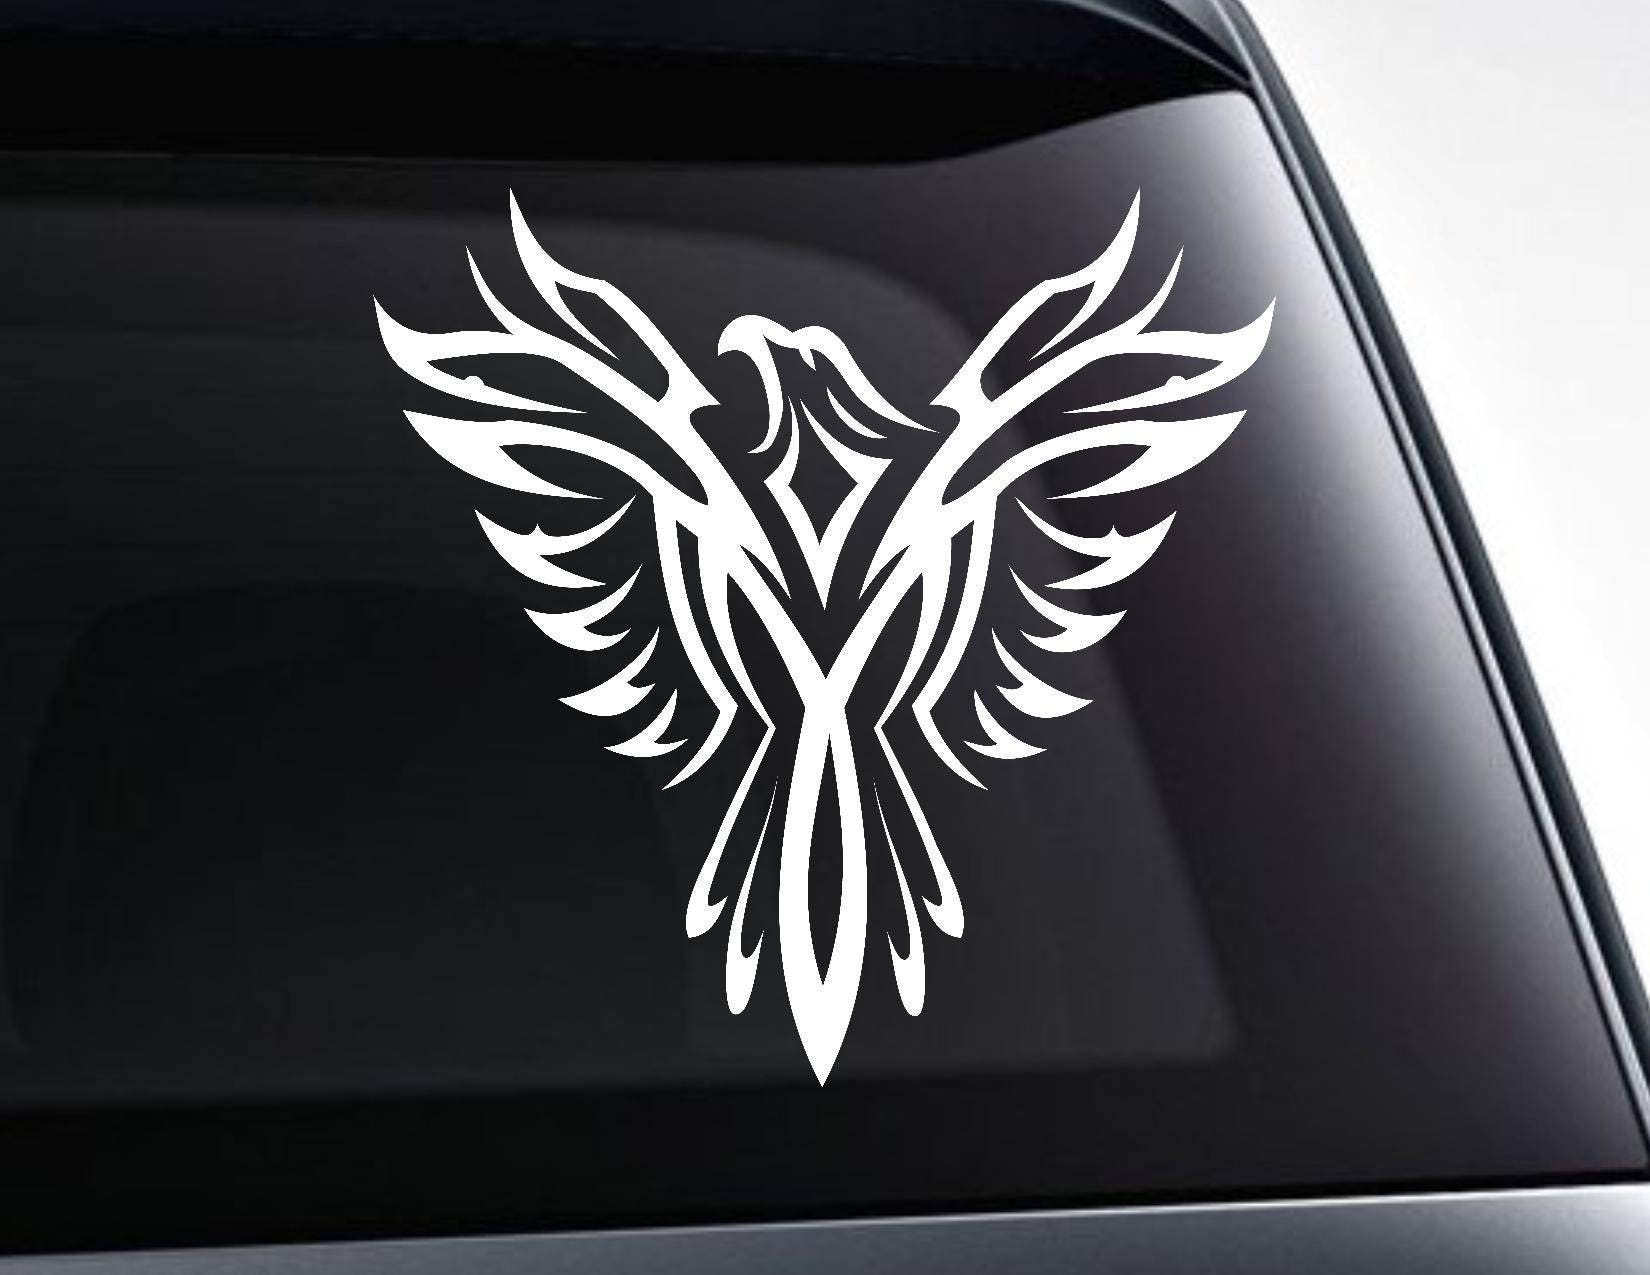 Phoenix Bird Sticker For Car